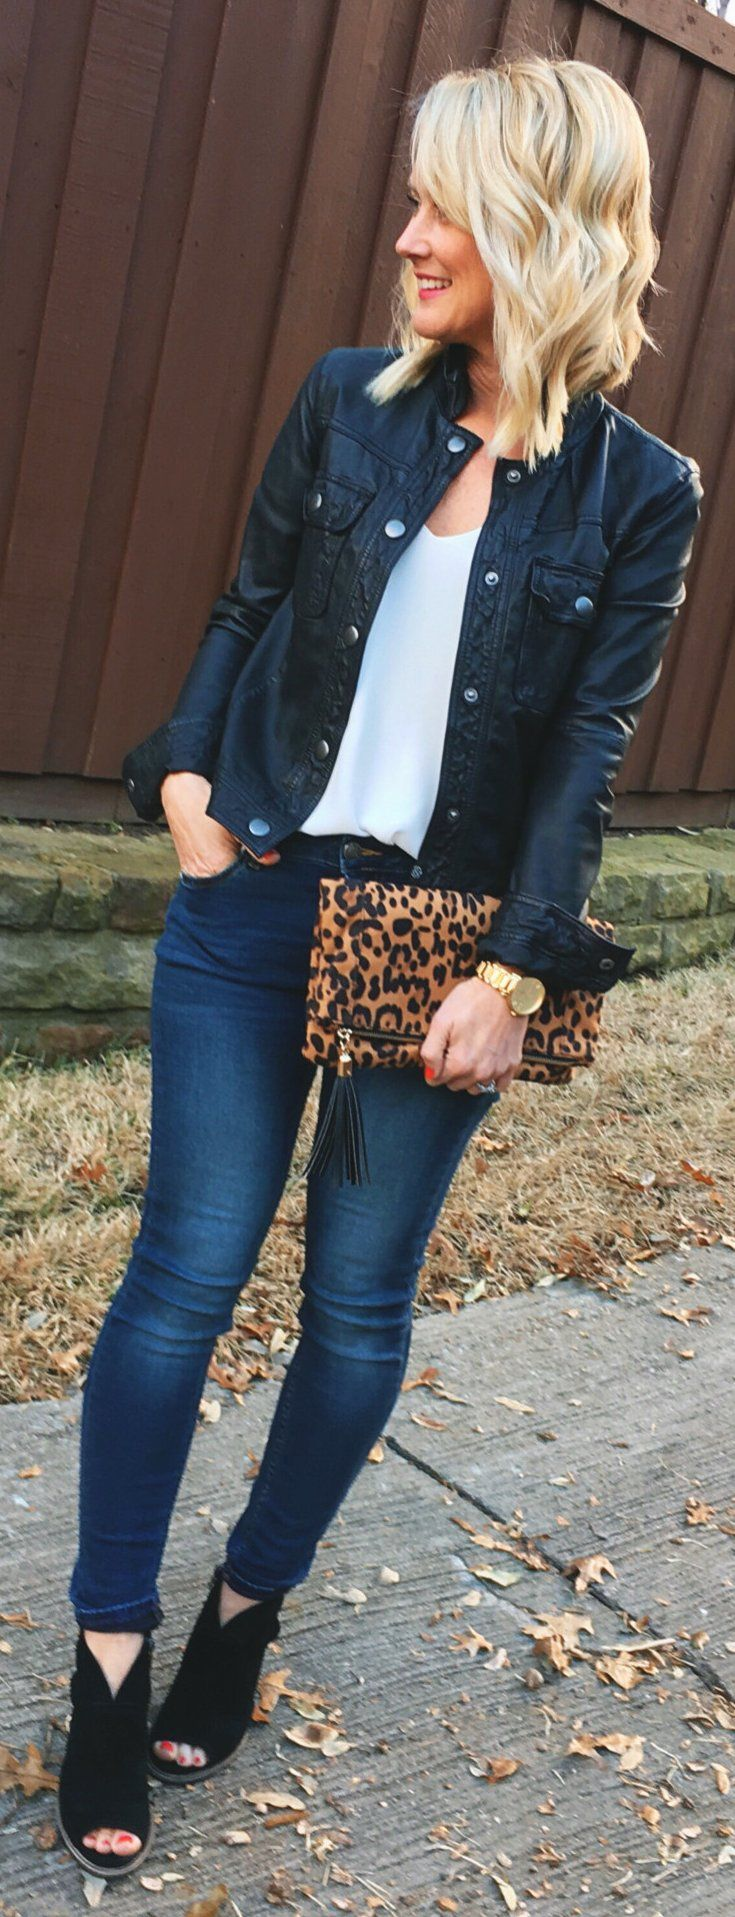 Black Leather Jacket / White Top / Leopard Clutch / Navy Skinny Jeans / Black Open Toe Booties